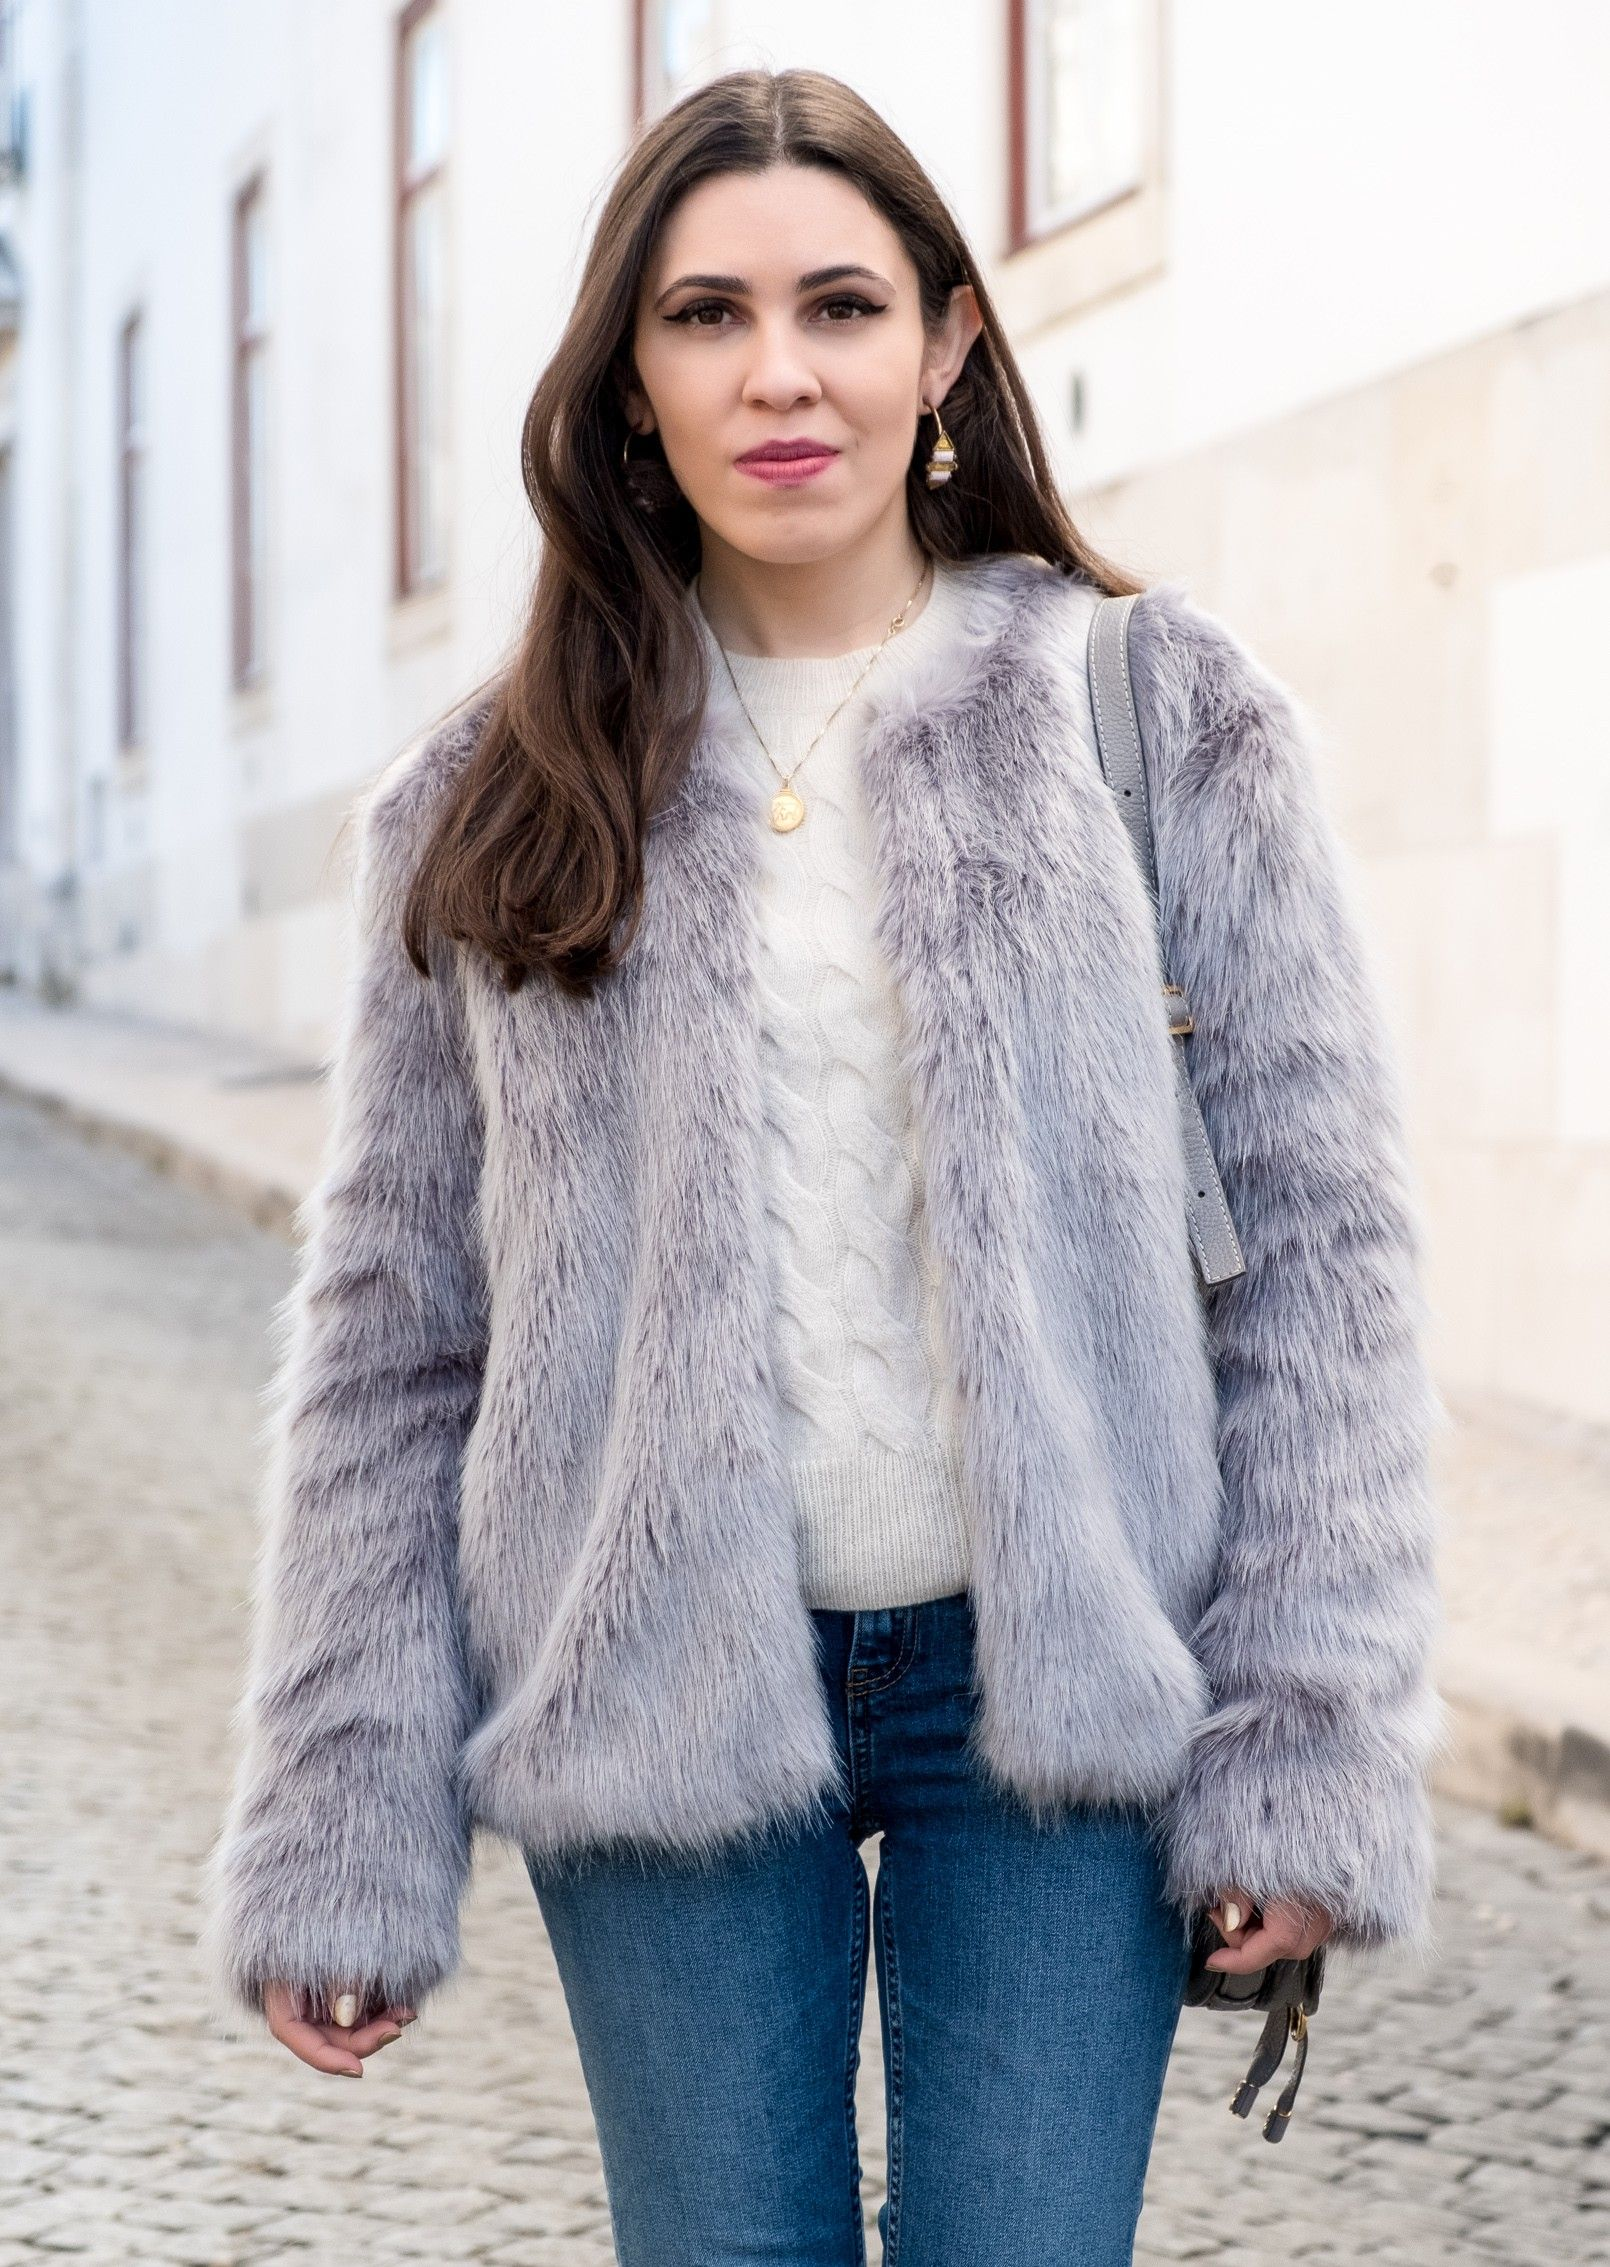 ae31ef8f nude cozy eights cashmere mango knit denim zara jeans white pearls faux fur  light blue bershka coat cinco gold world map necklace 2909 EN photo